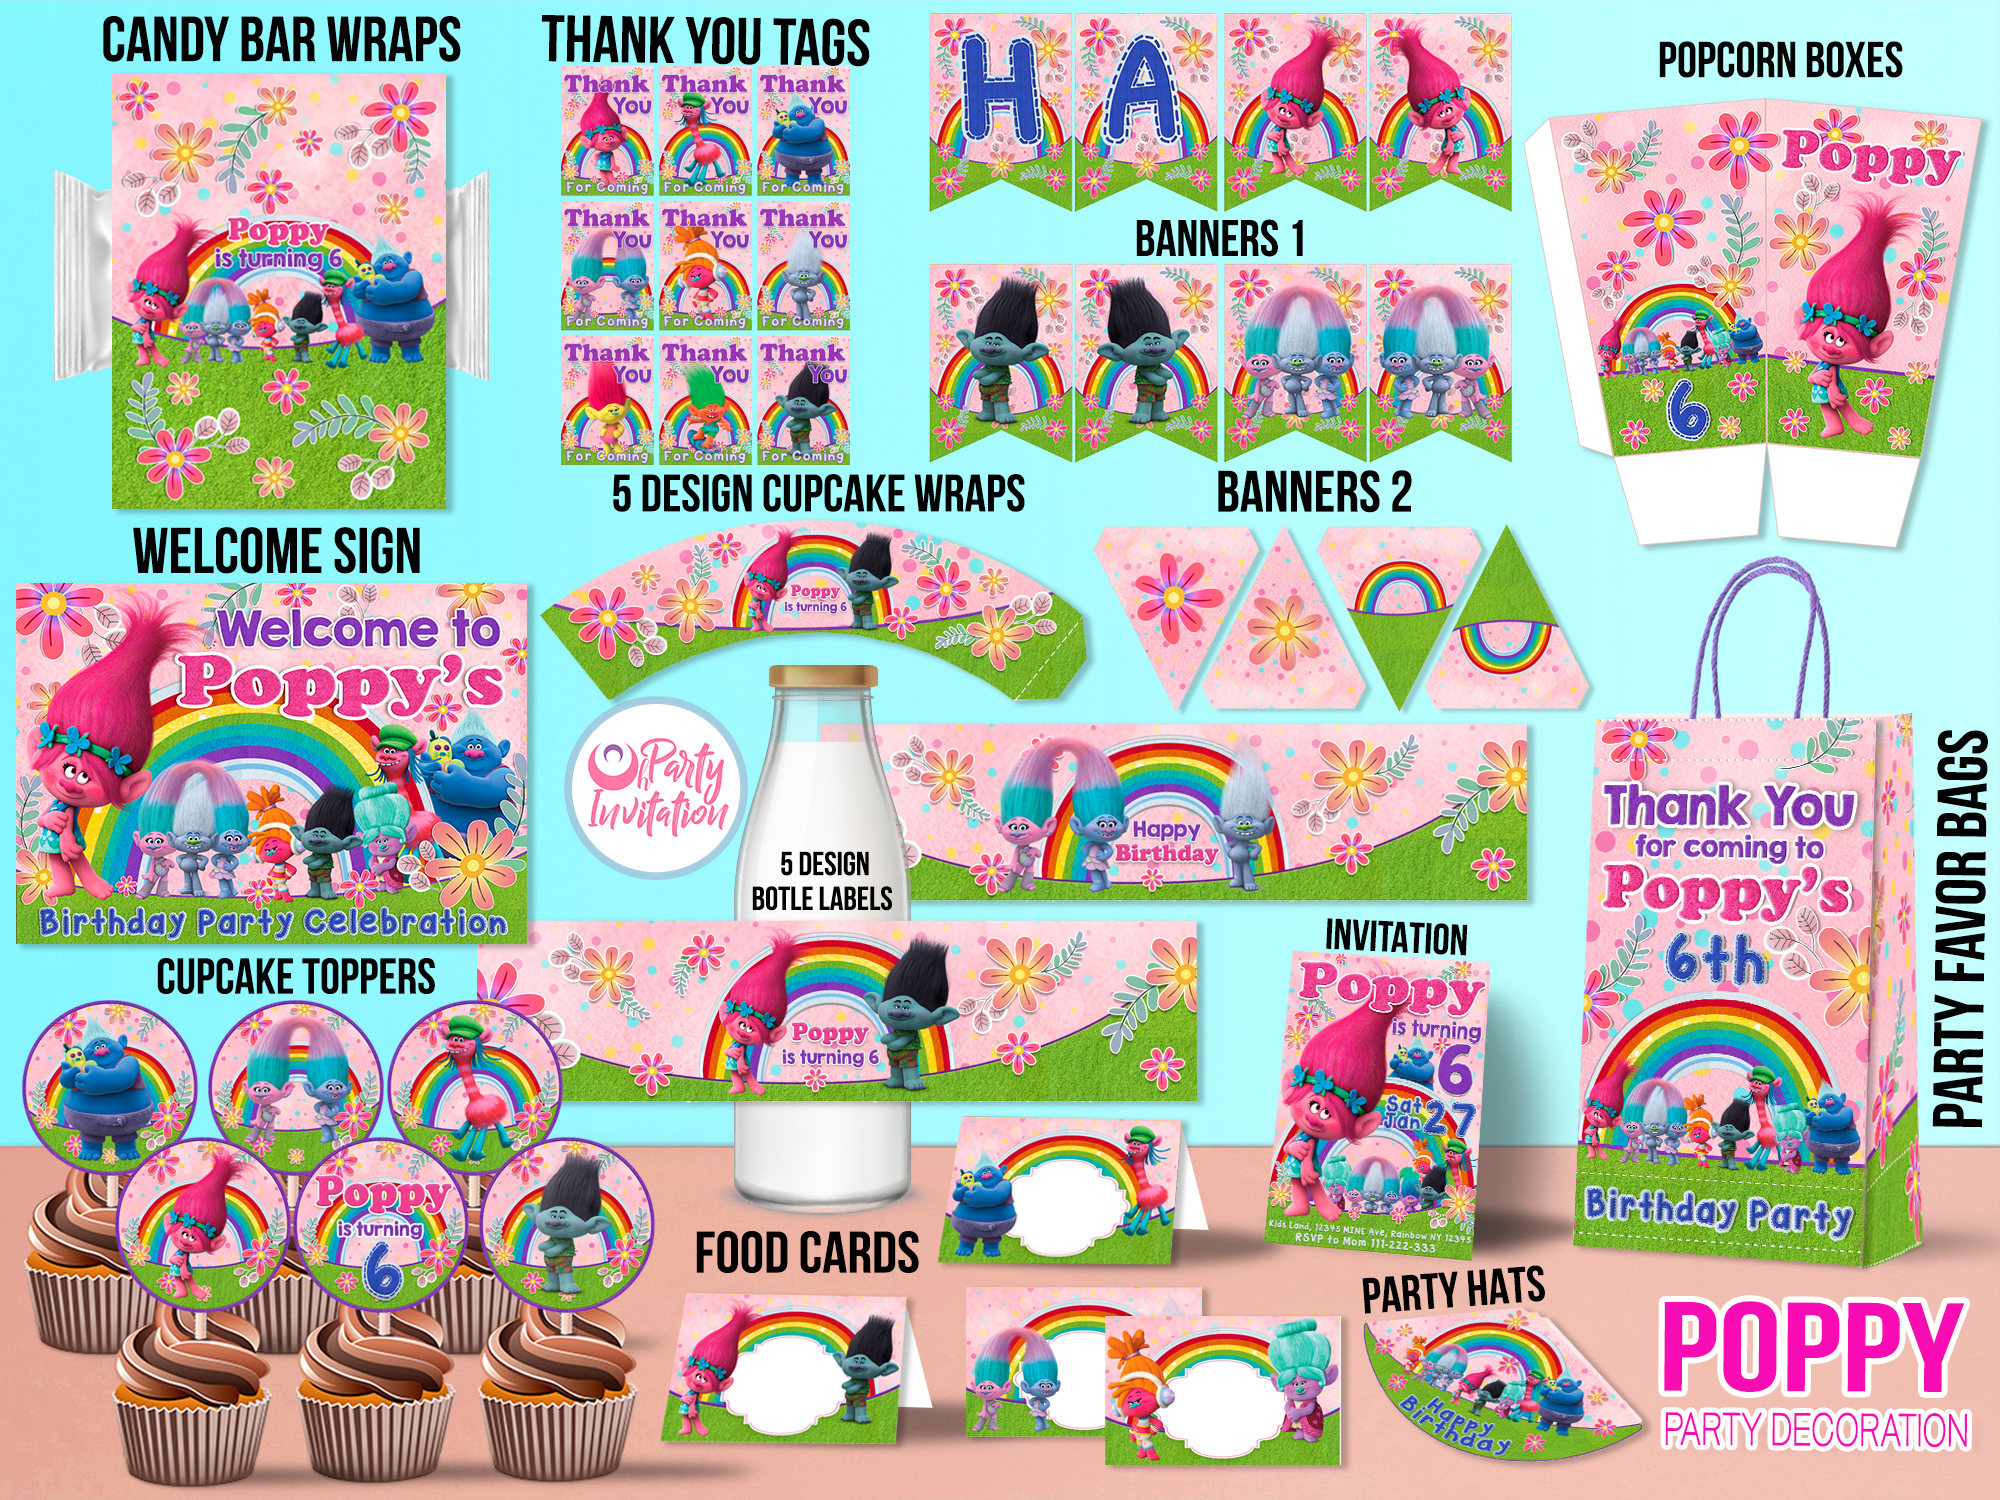 You Can Coordinate Your Entire Party Theme With This Easy To Use Trolls Printable Kit From Oh Invitation Has Everything Need